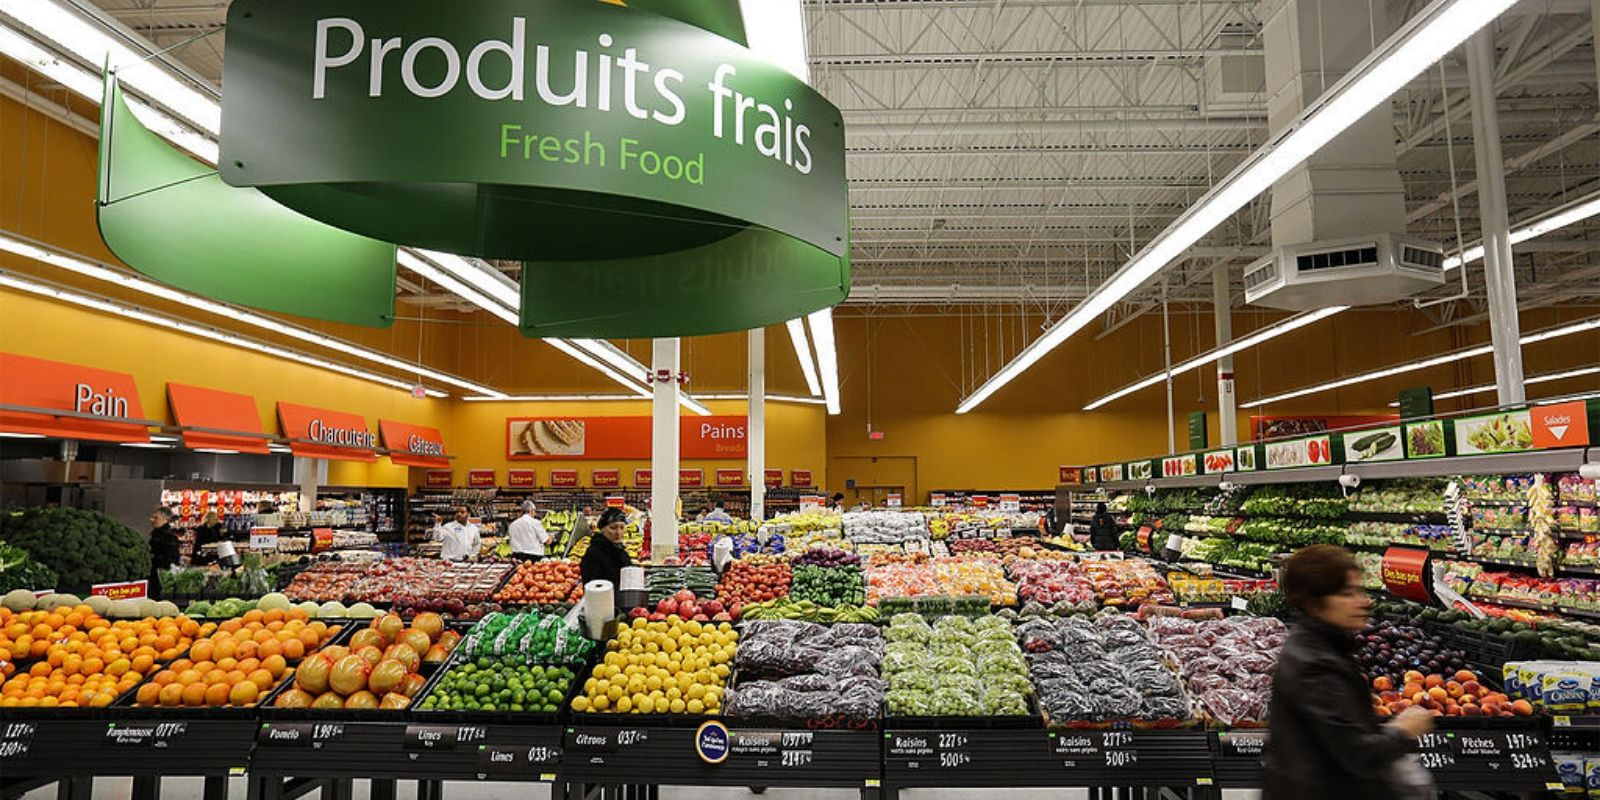 87% of Canadians believe food prices are rising faster than their income